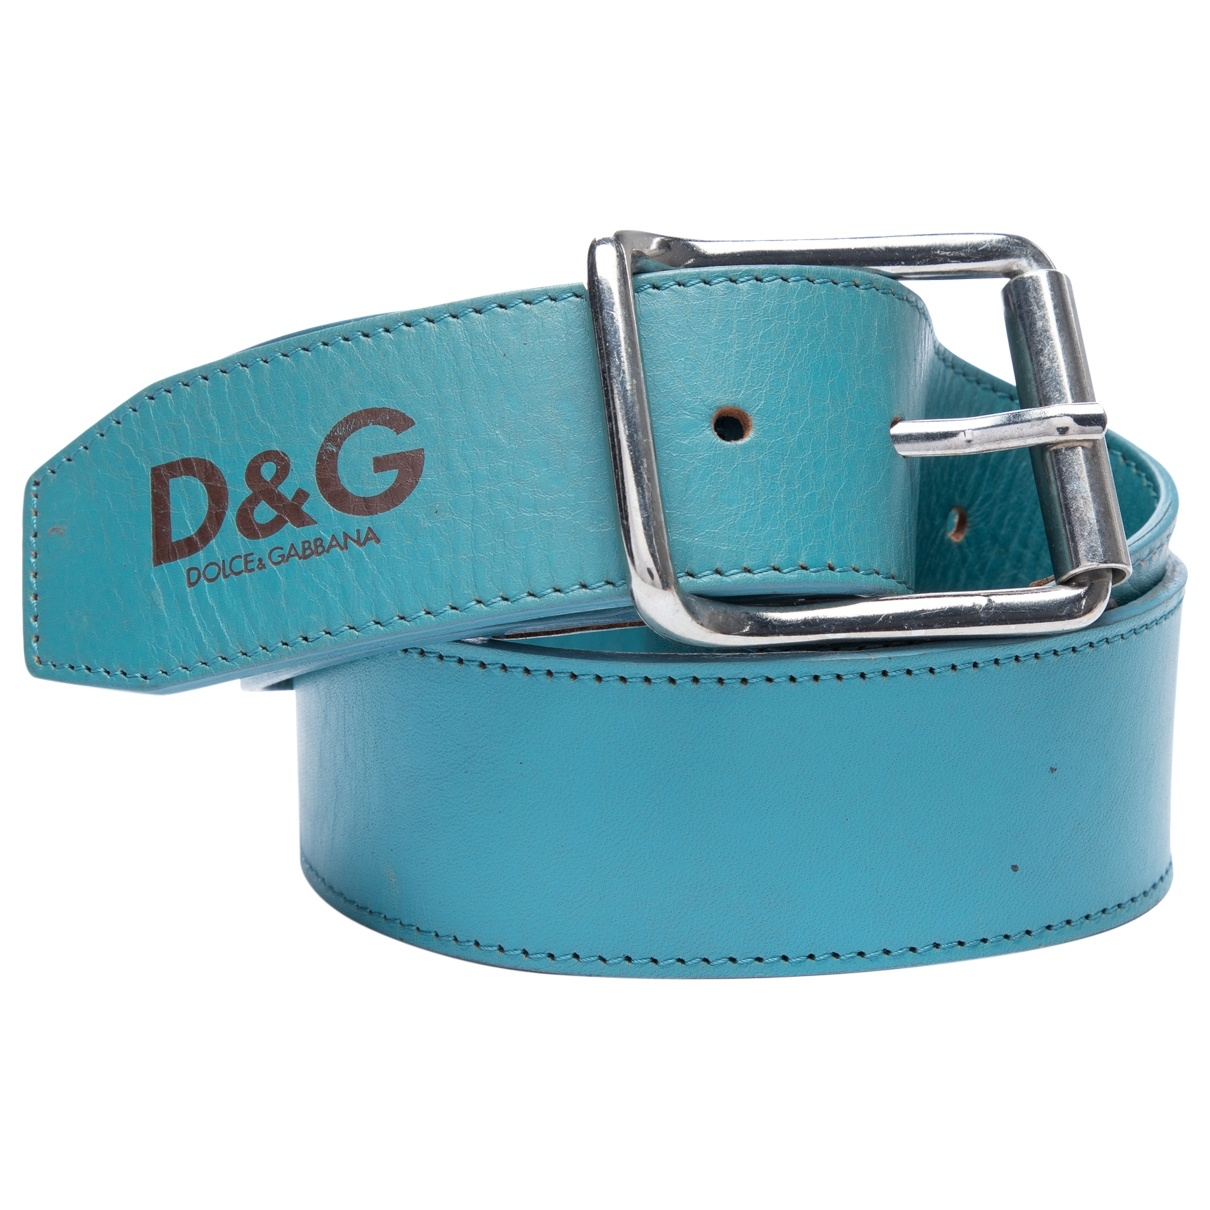 D&g \N Blue Leather belt for Women 80 cm